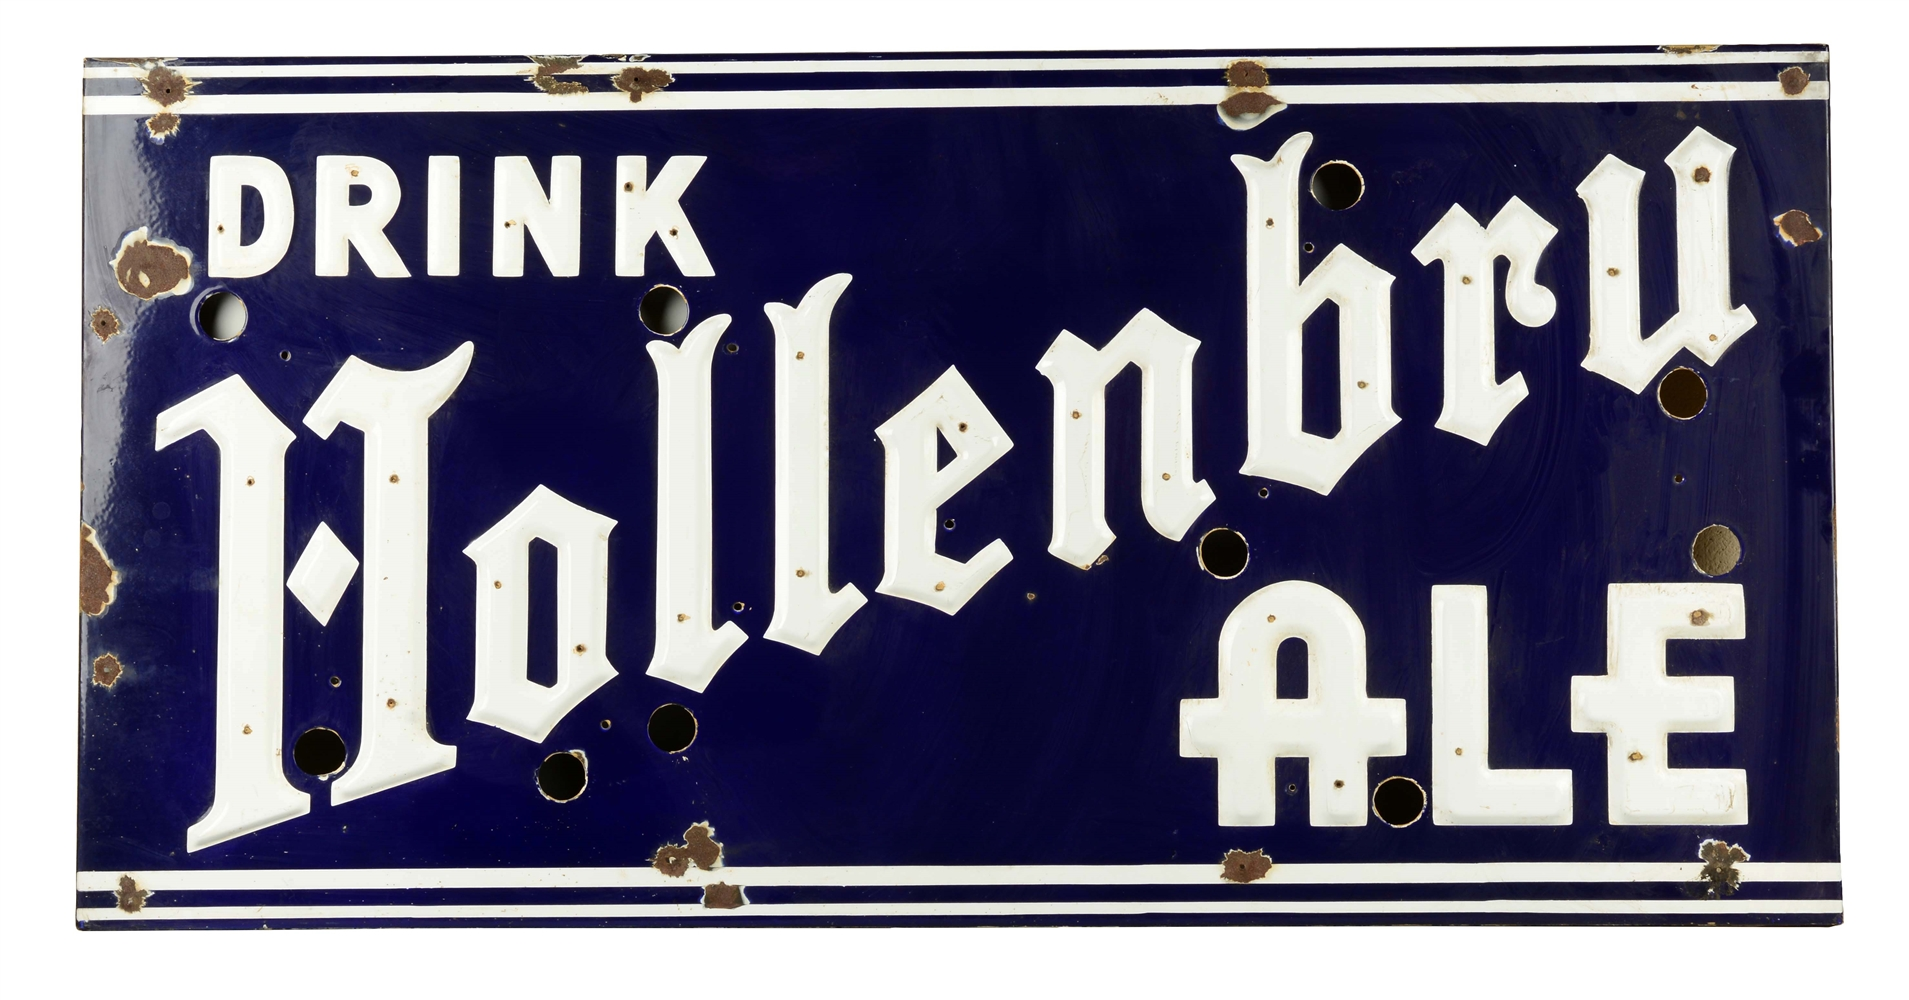 Drink Hollenbru Ale Porcelain Sign.